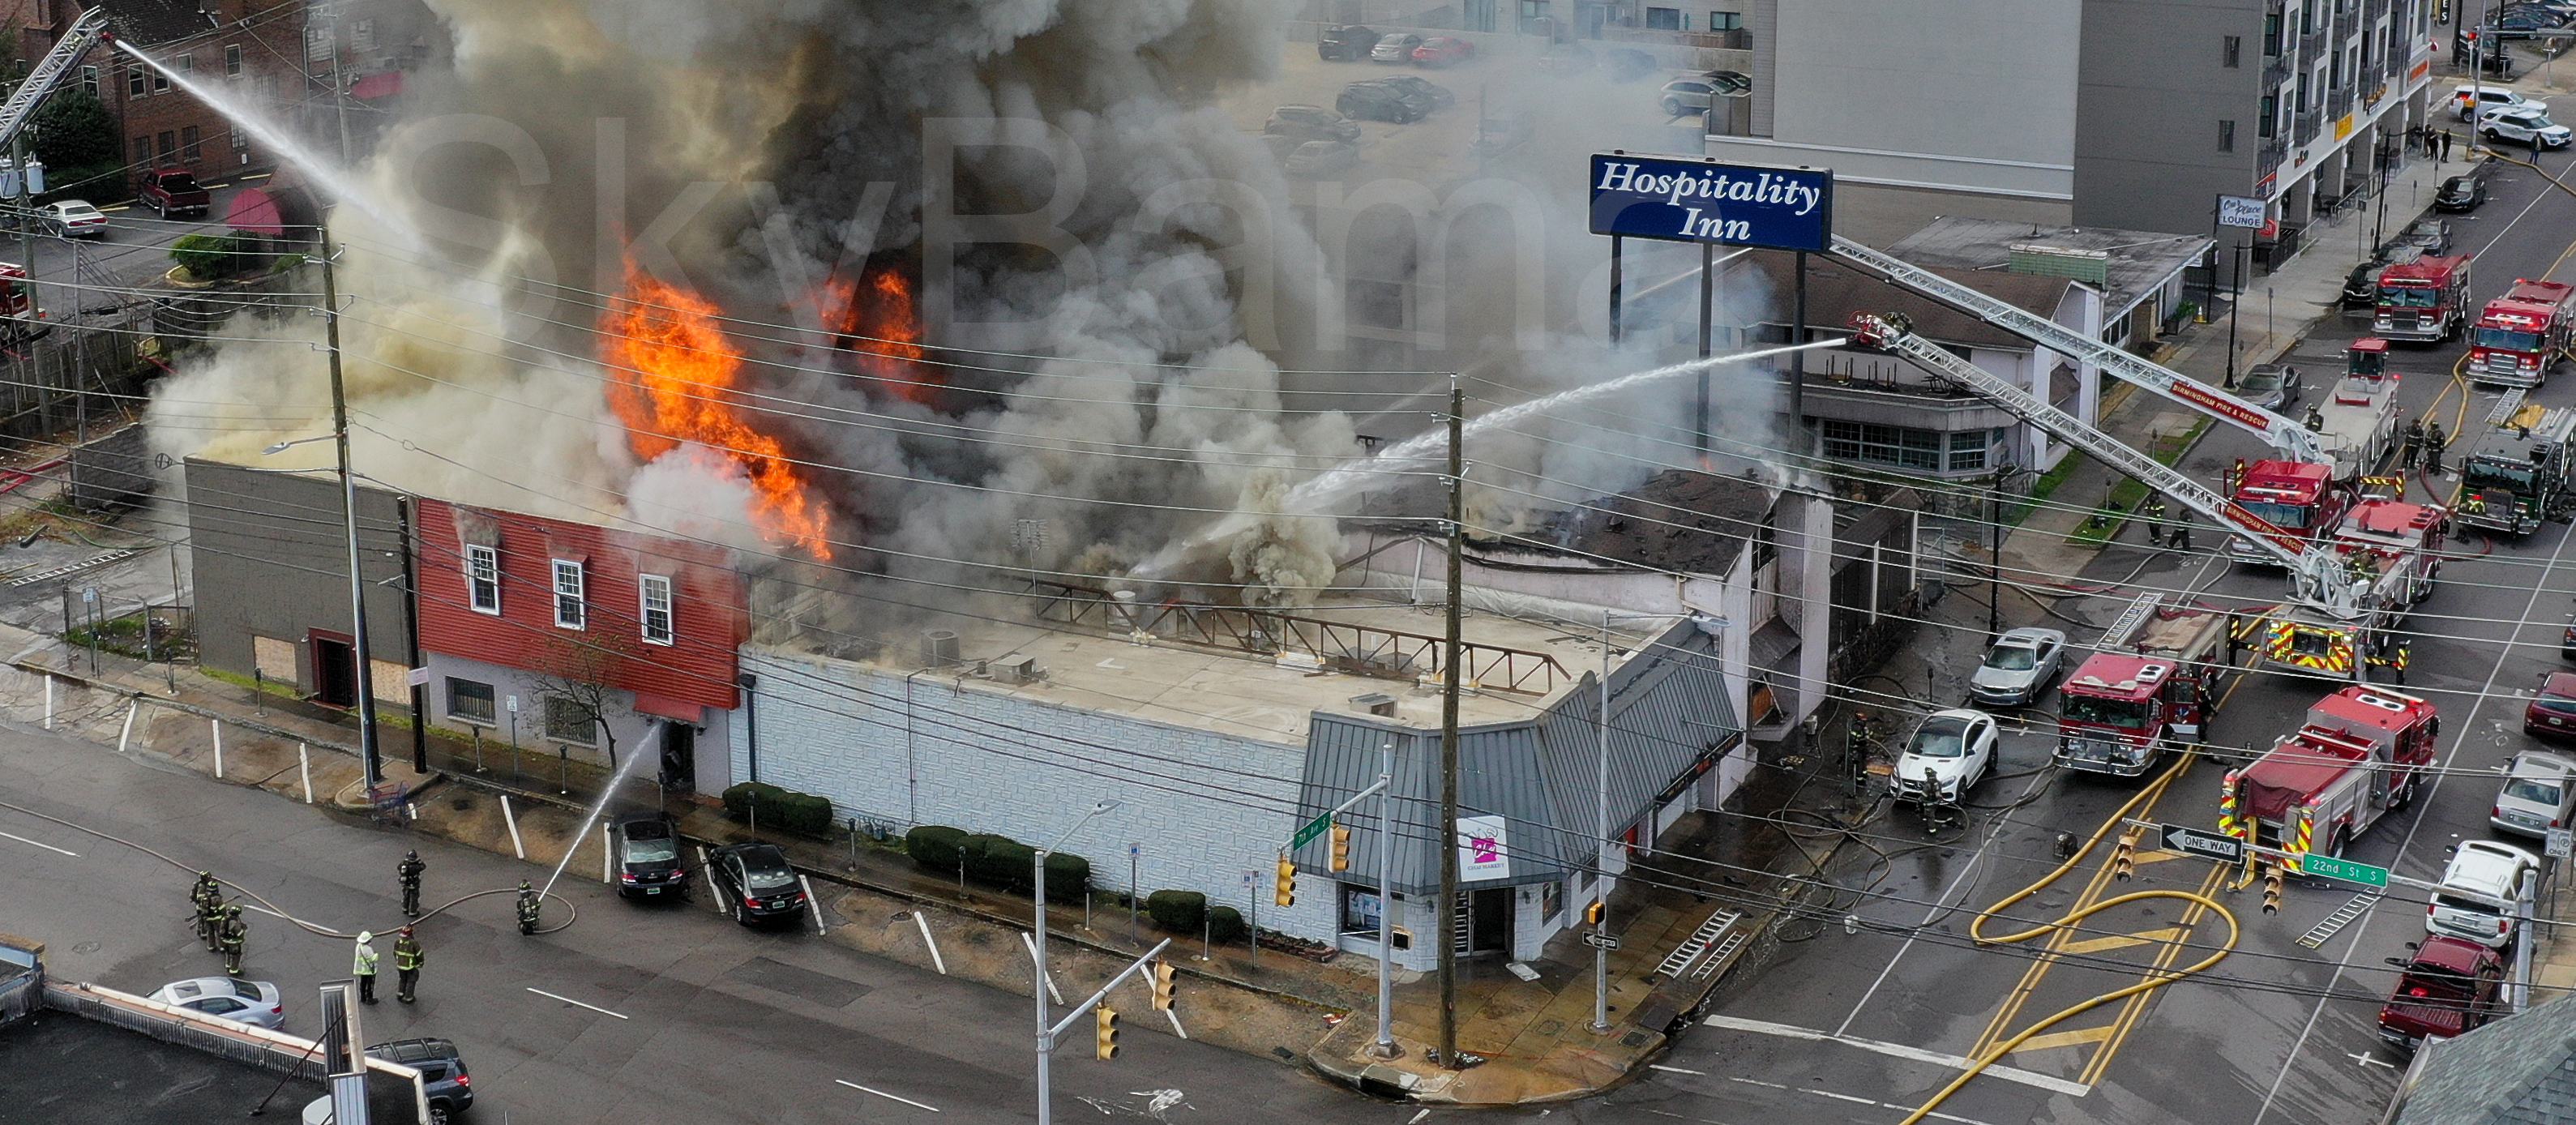 2 Alarm Fire Birmingham at the vacant Hospitality Inn arson suspected.